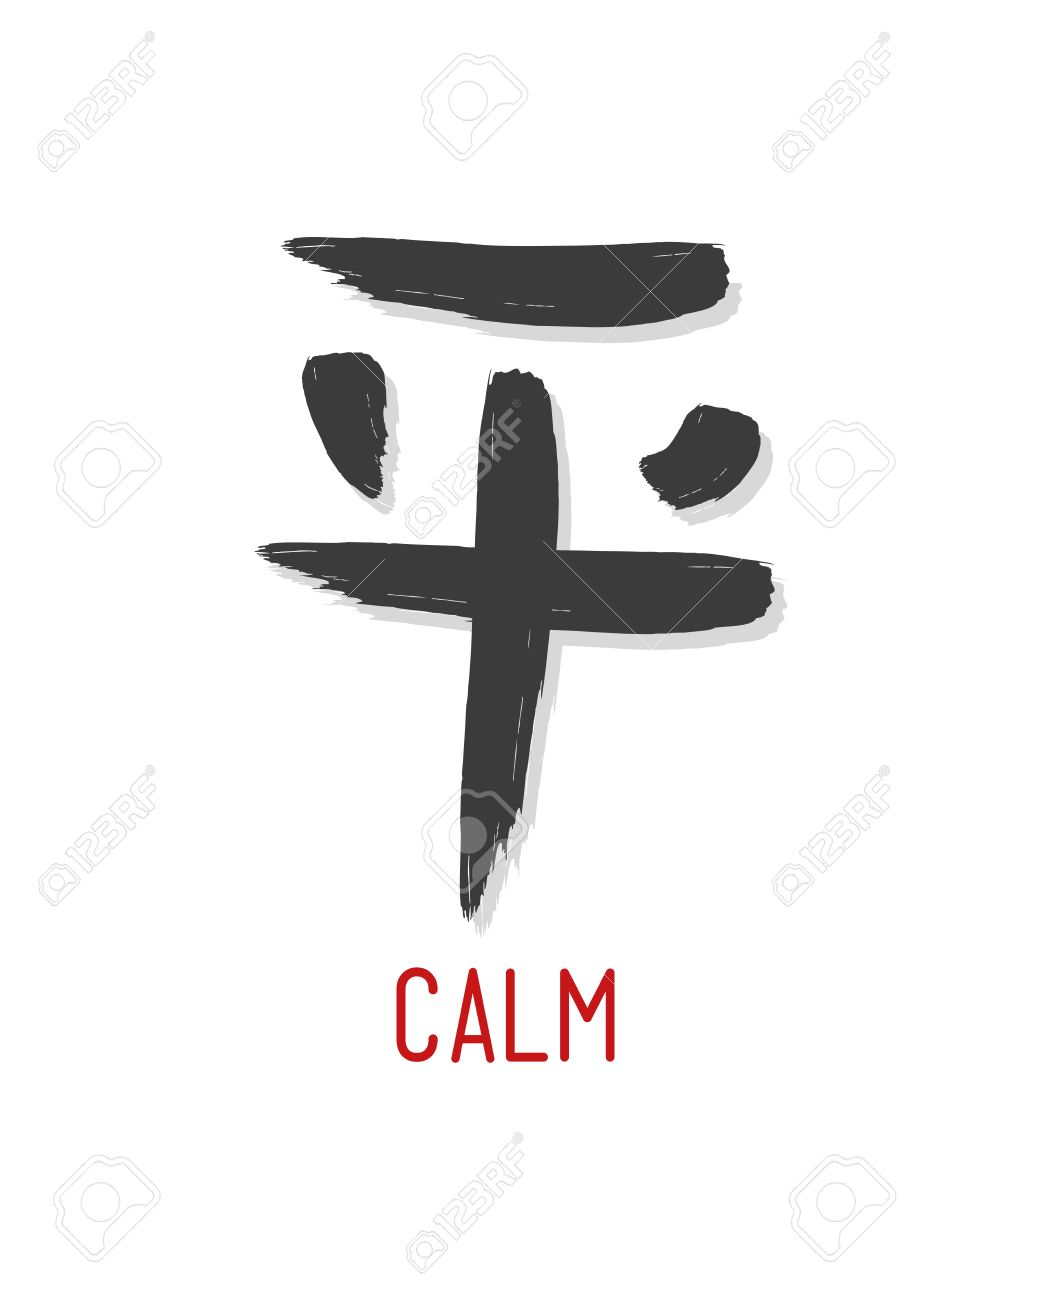 Hand Drawn Vector Illustration Of The Japanese Symbol For Calm